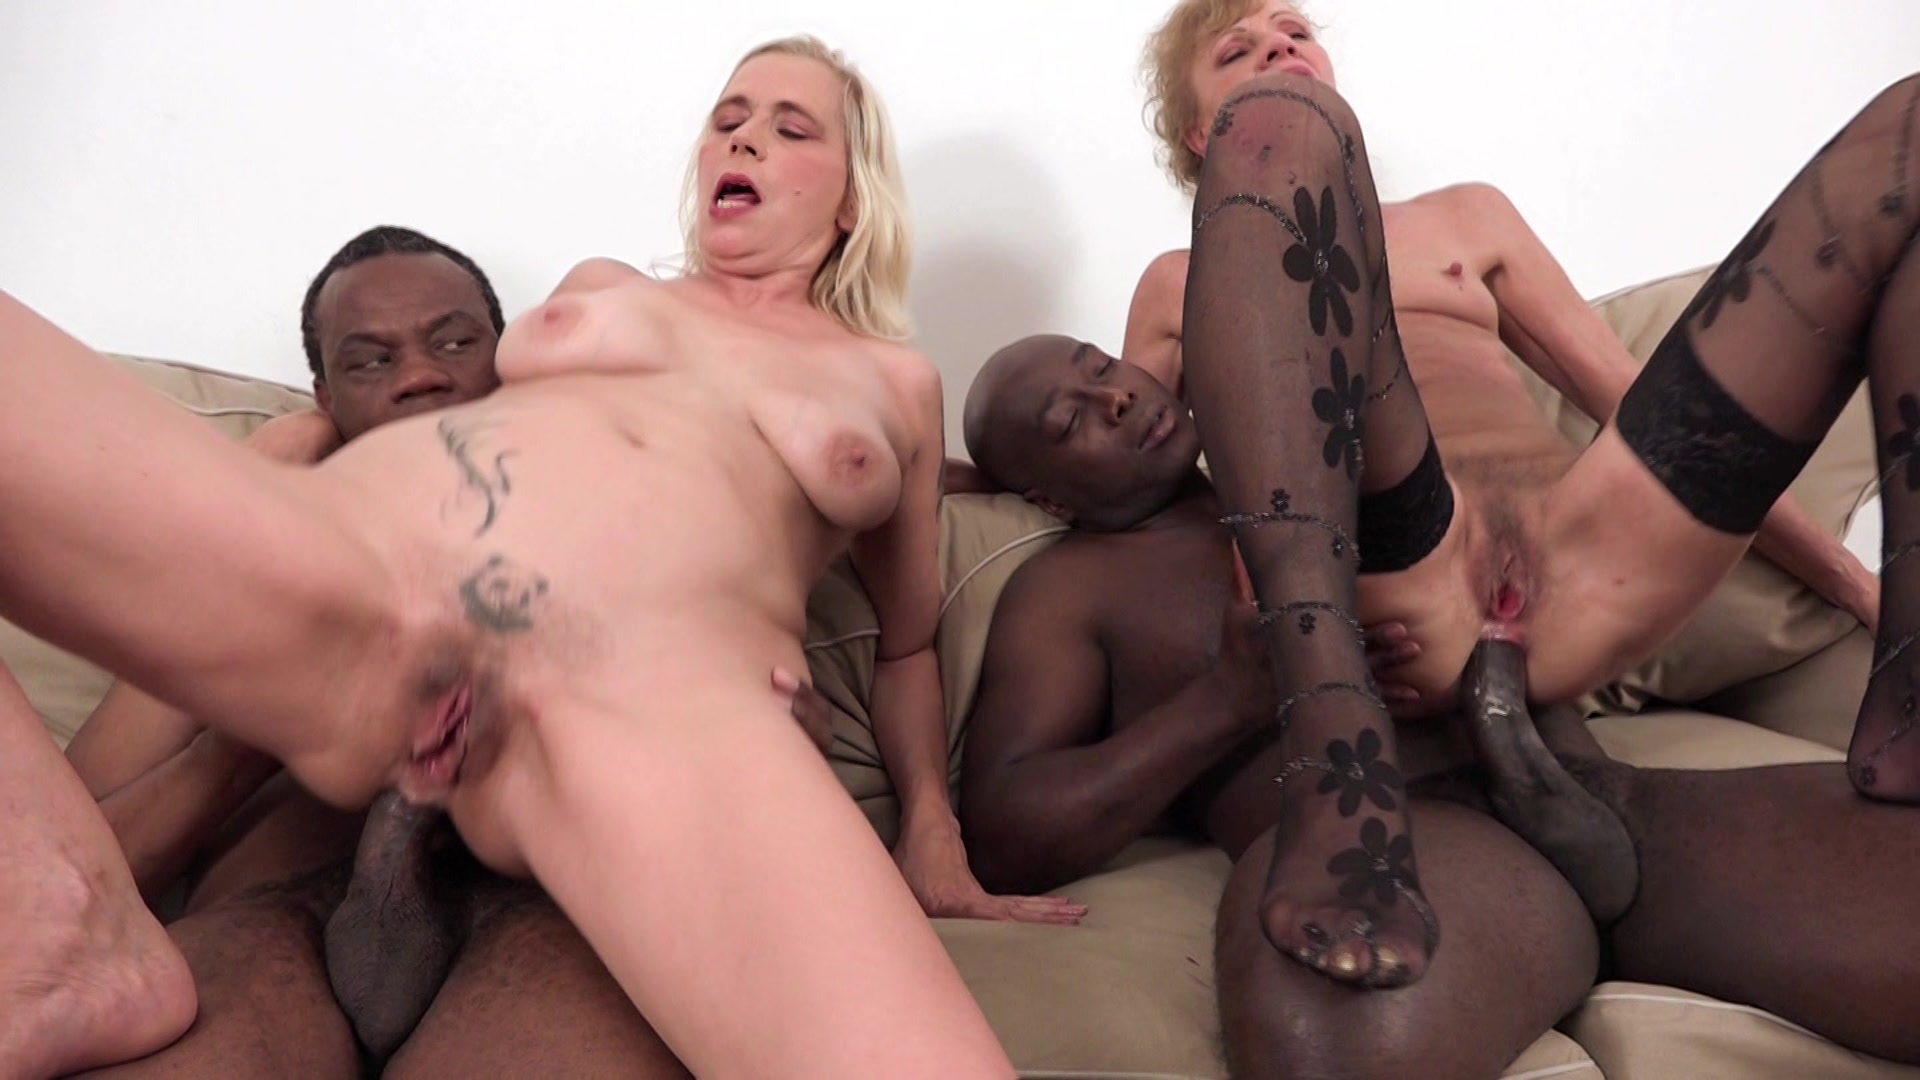 Interracial porn real